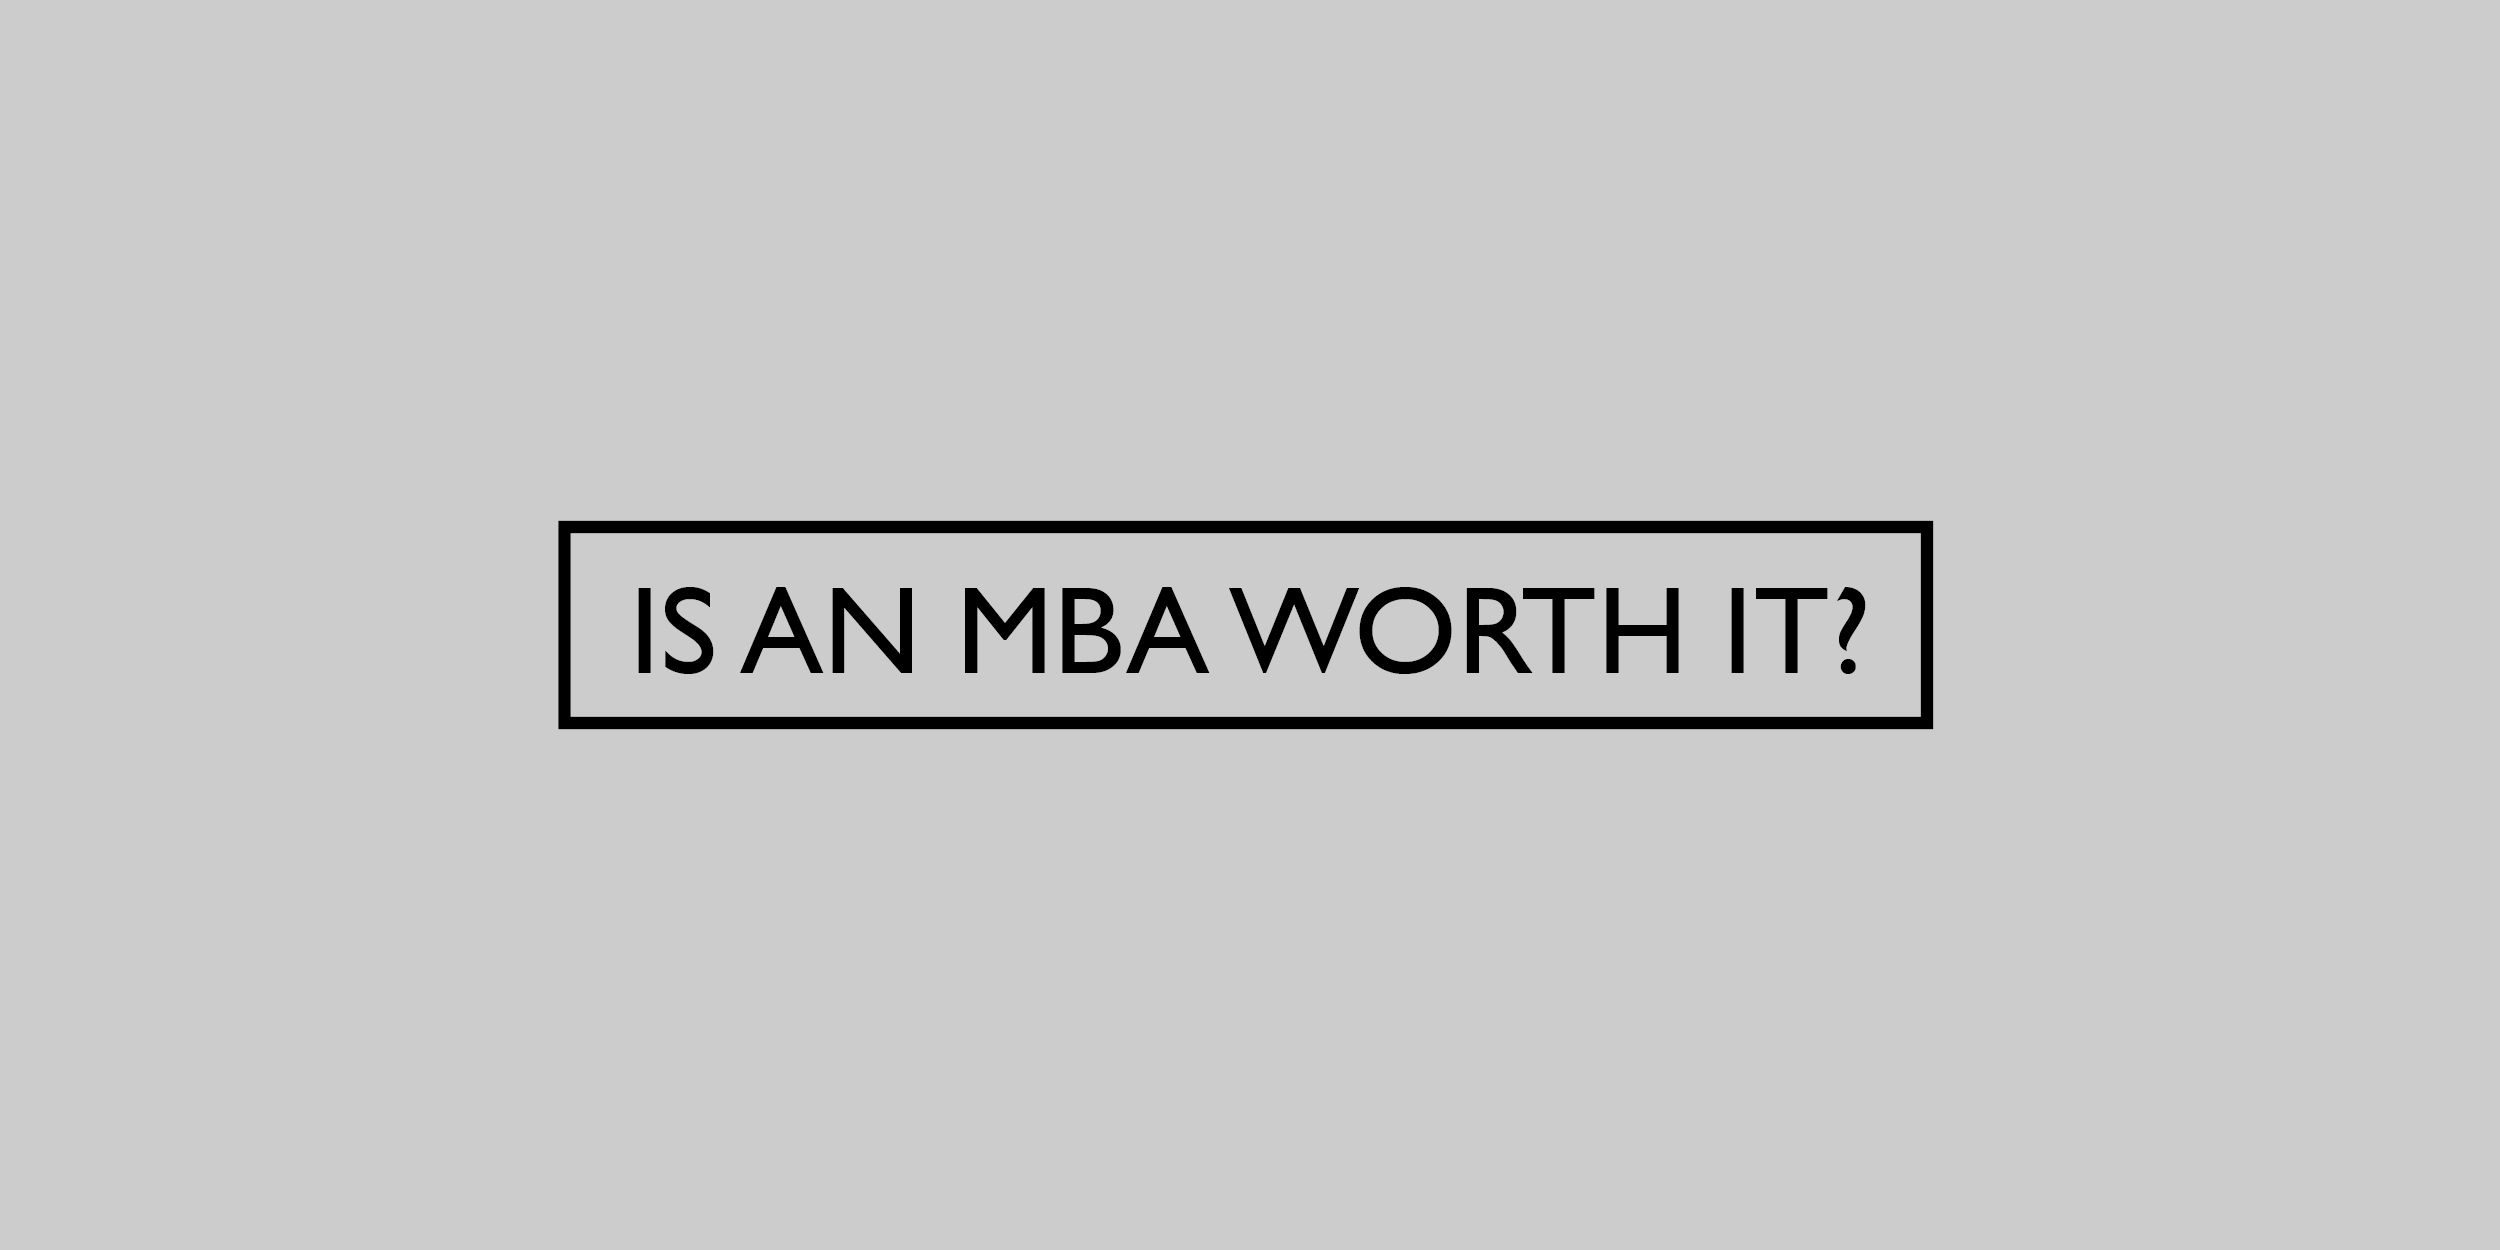 Is an MBA worth it?